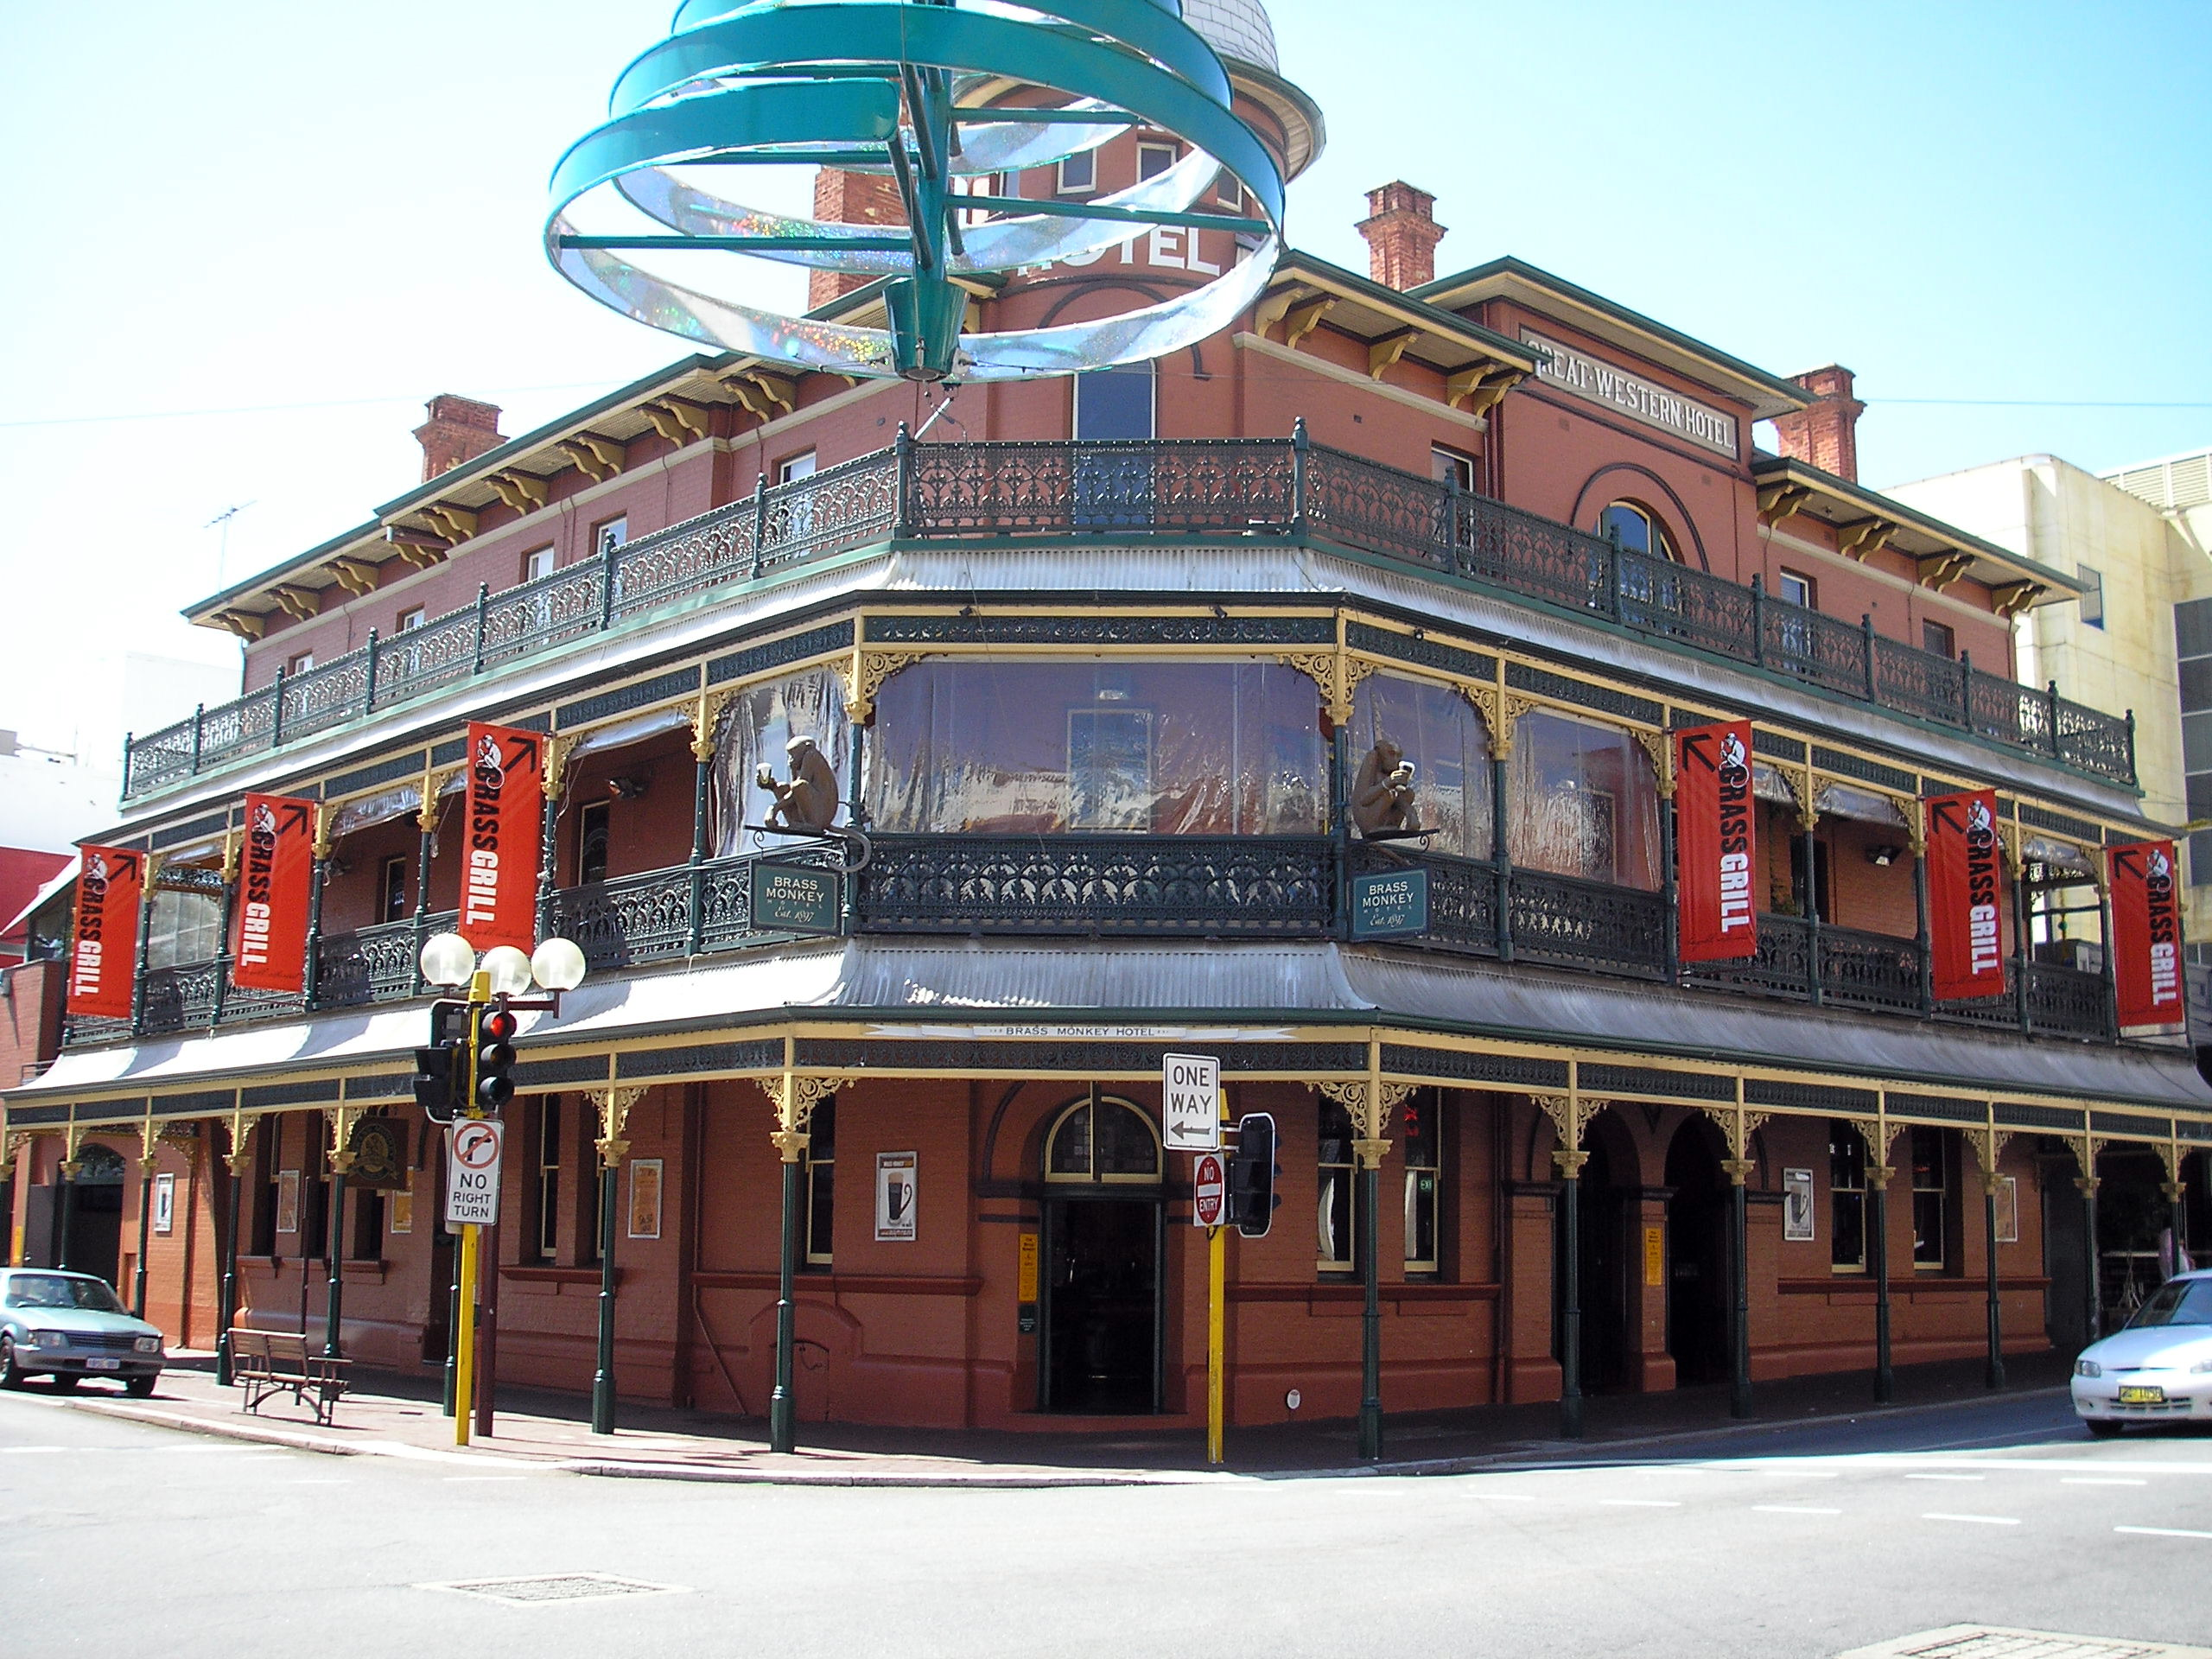 File:Great Western Hotel-Brass Monkey.jpg - Wikimedia Commons